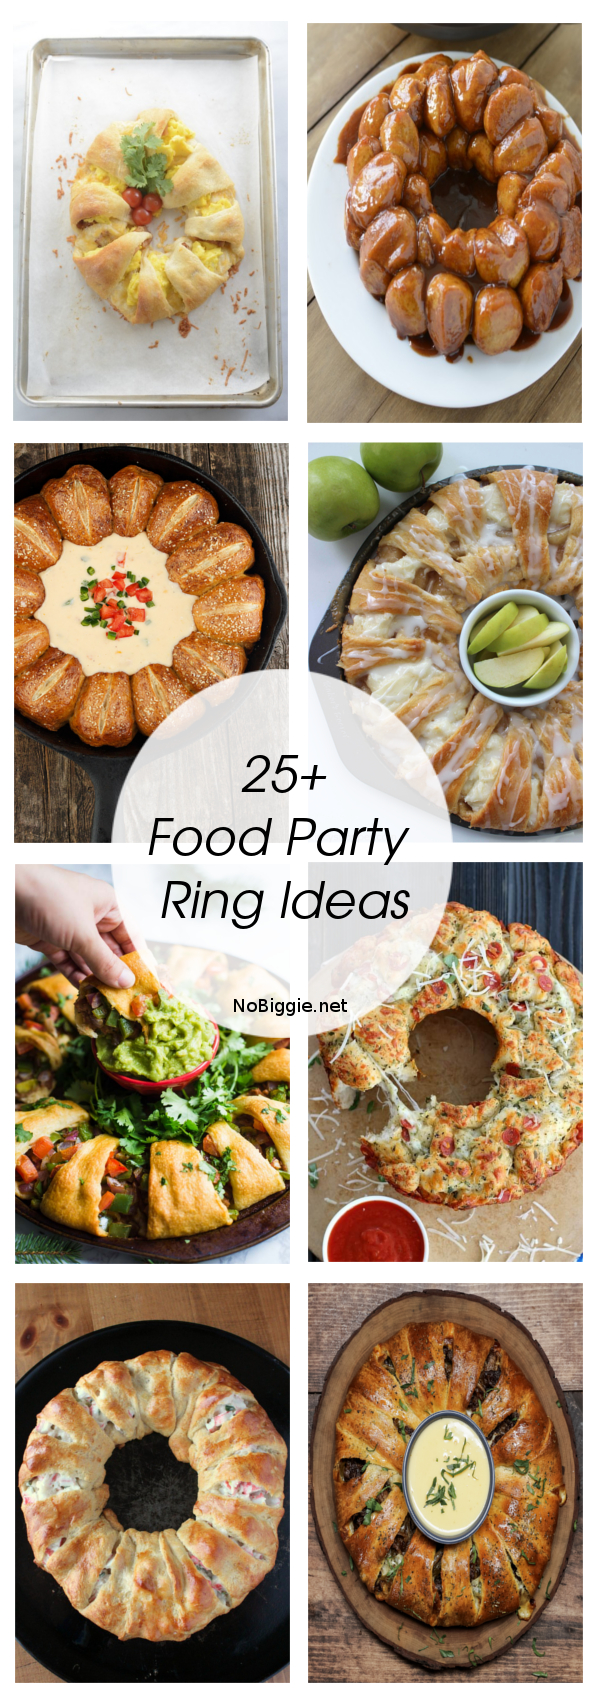 25+ Food Party Ring Ideas | NoBiggie.net